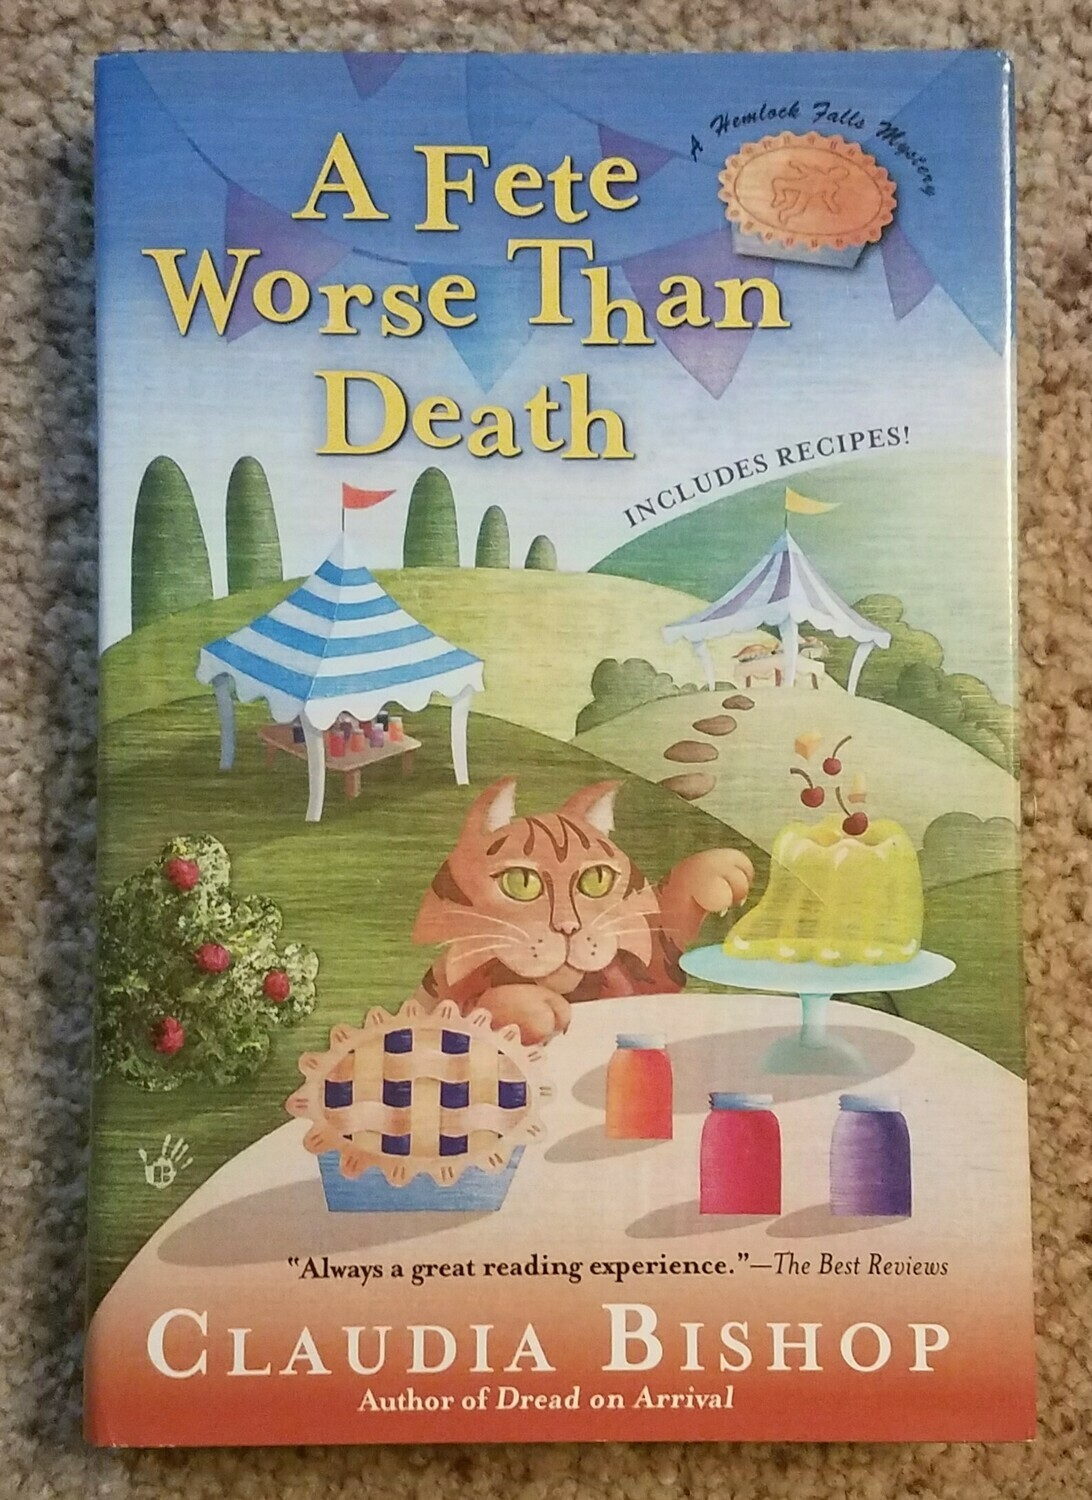 A Fete Worse Than Death by Claudia Bishop